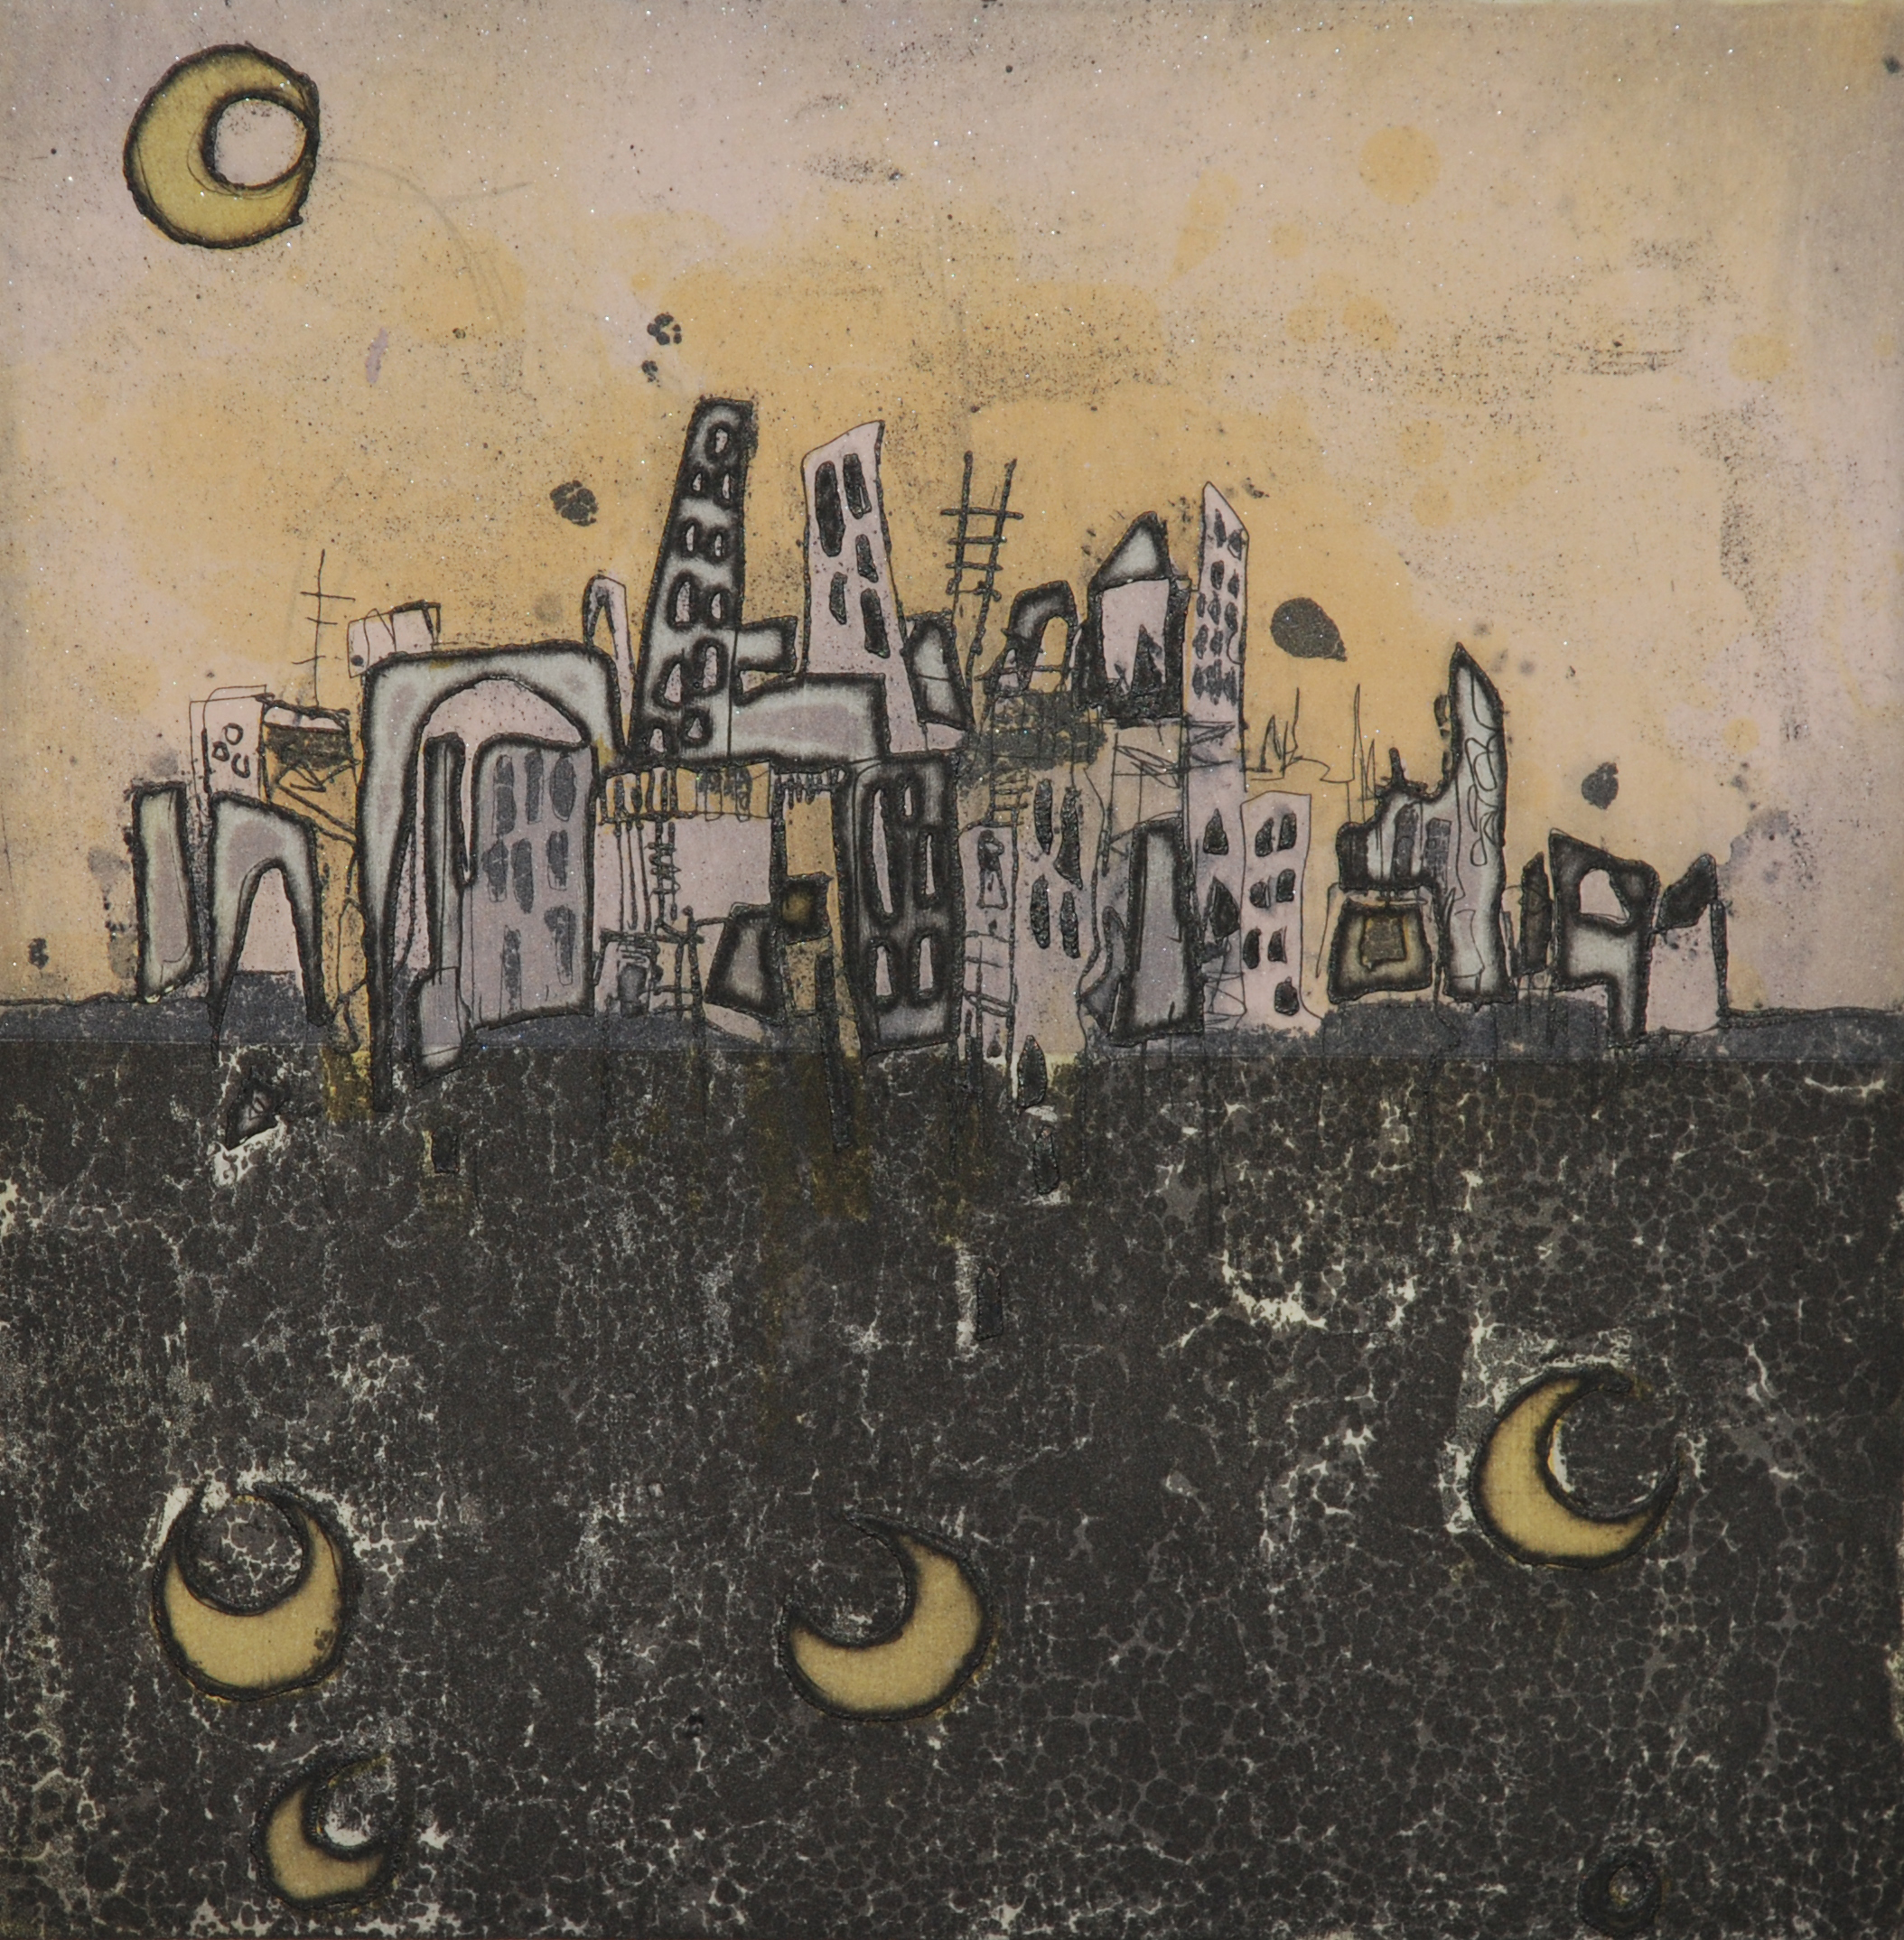 lunulae, moonlight and the metropolis  etching, 20 x 20 cm